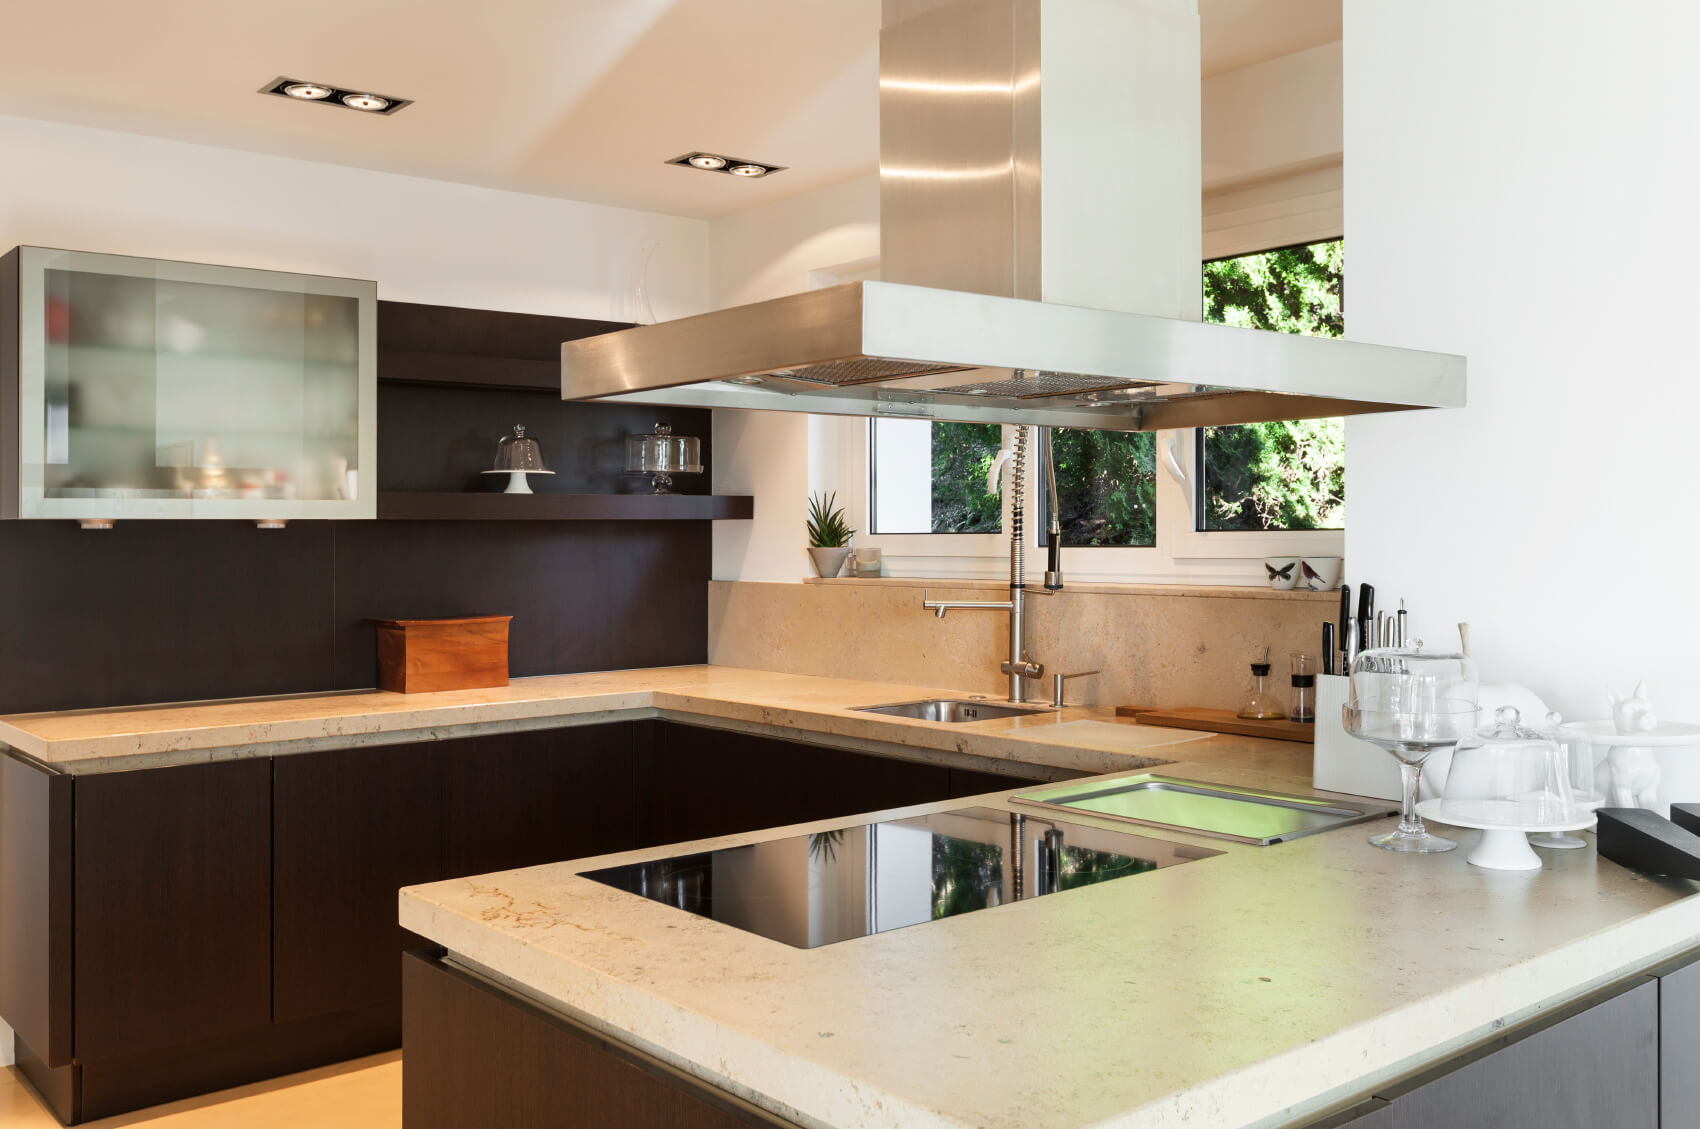 Subtle concrete countertops in a light patina. The countertops are punctuated by a ceramic cook top and an industrial style stainless steel sink.